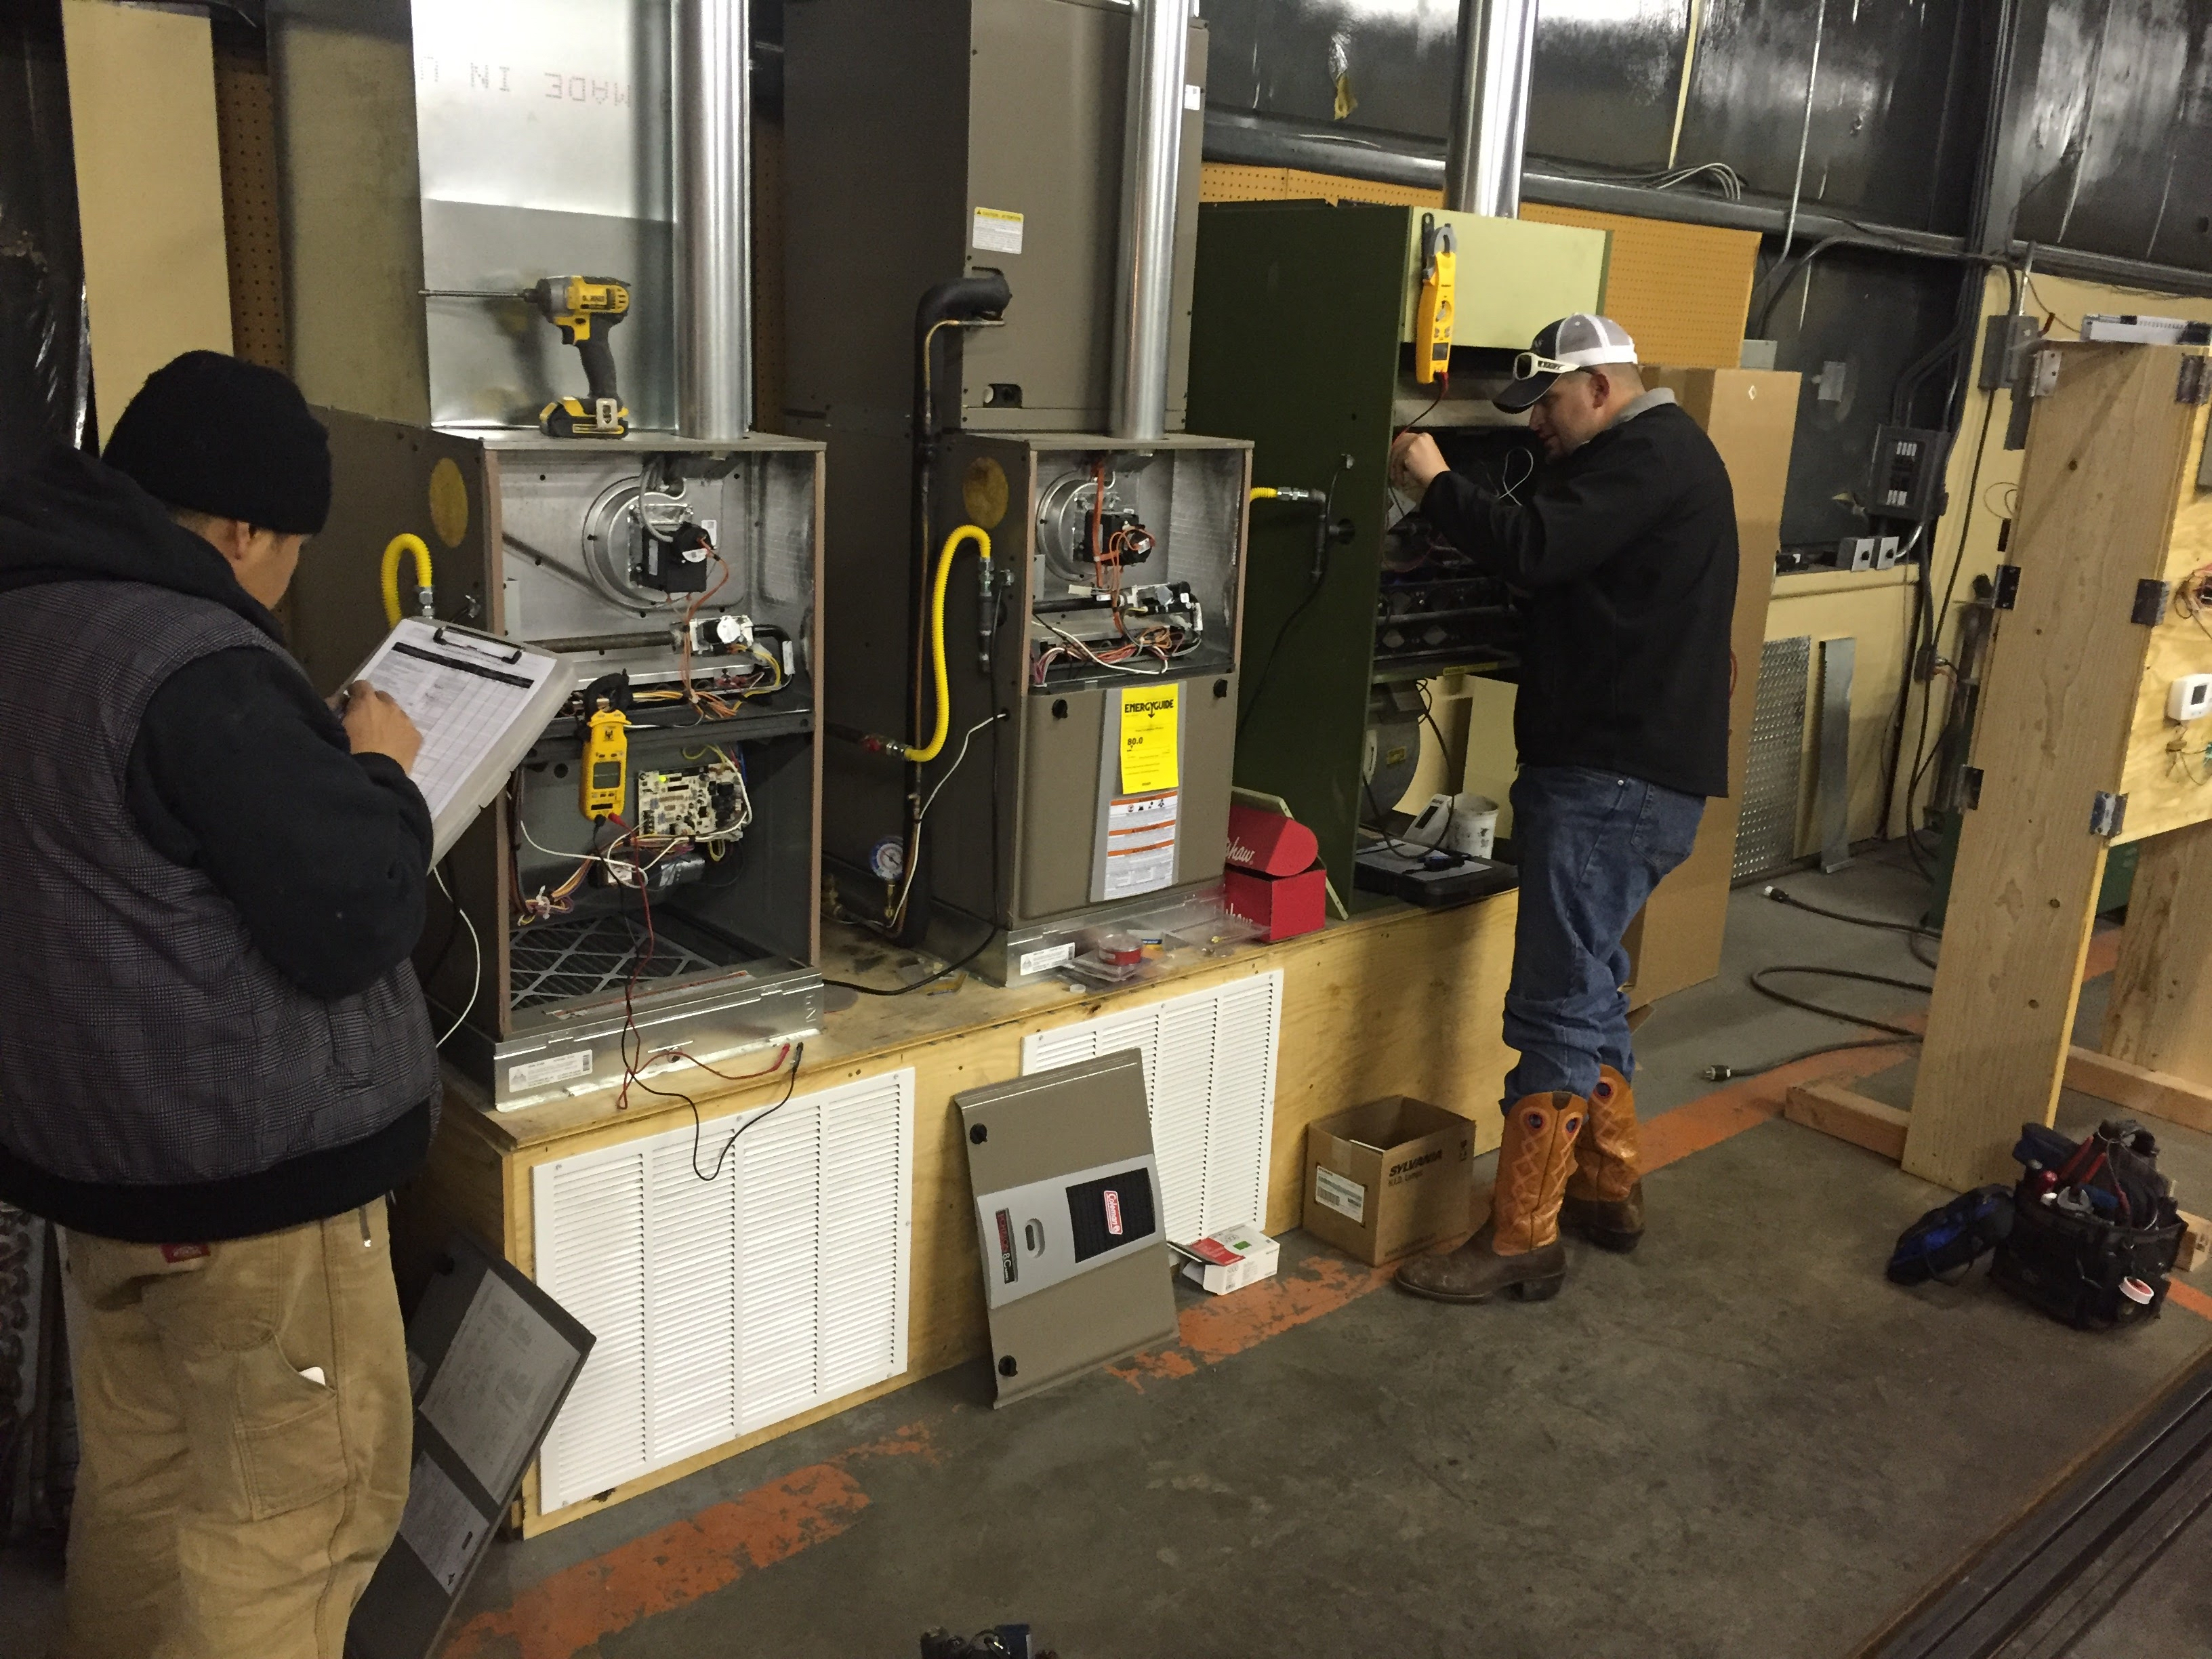 We build a training station with three types of gas furnaces so we could train on everything from the latest controls to the oldest wiring and components!